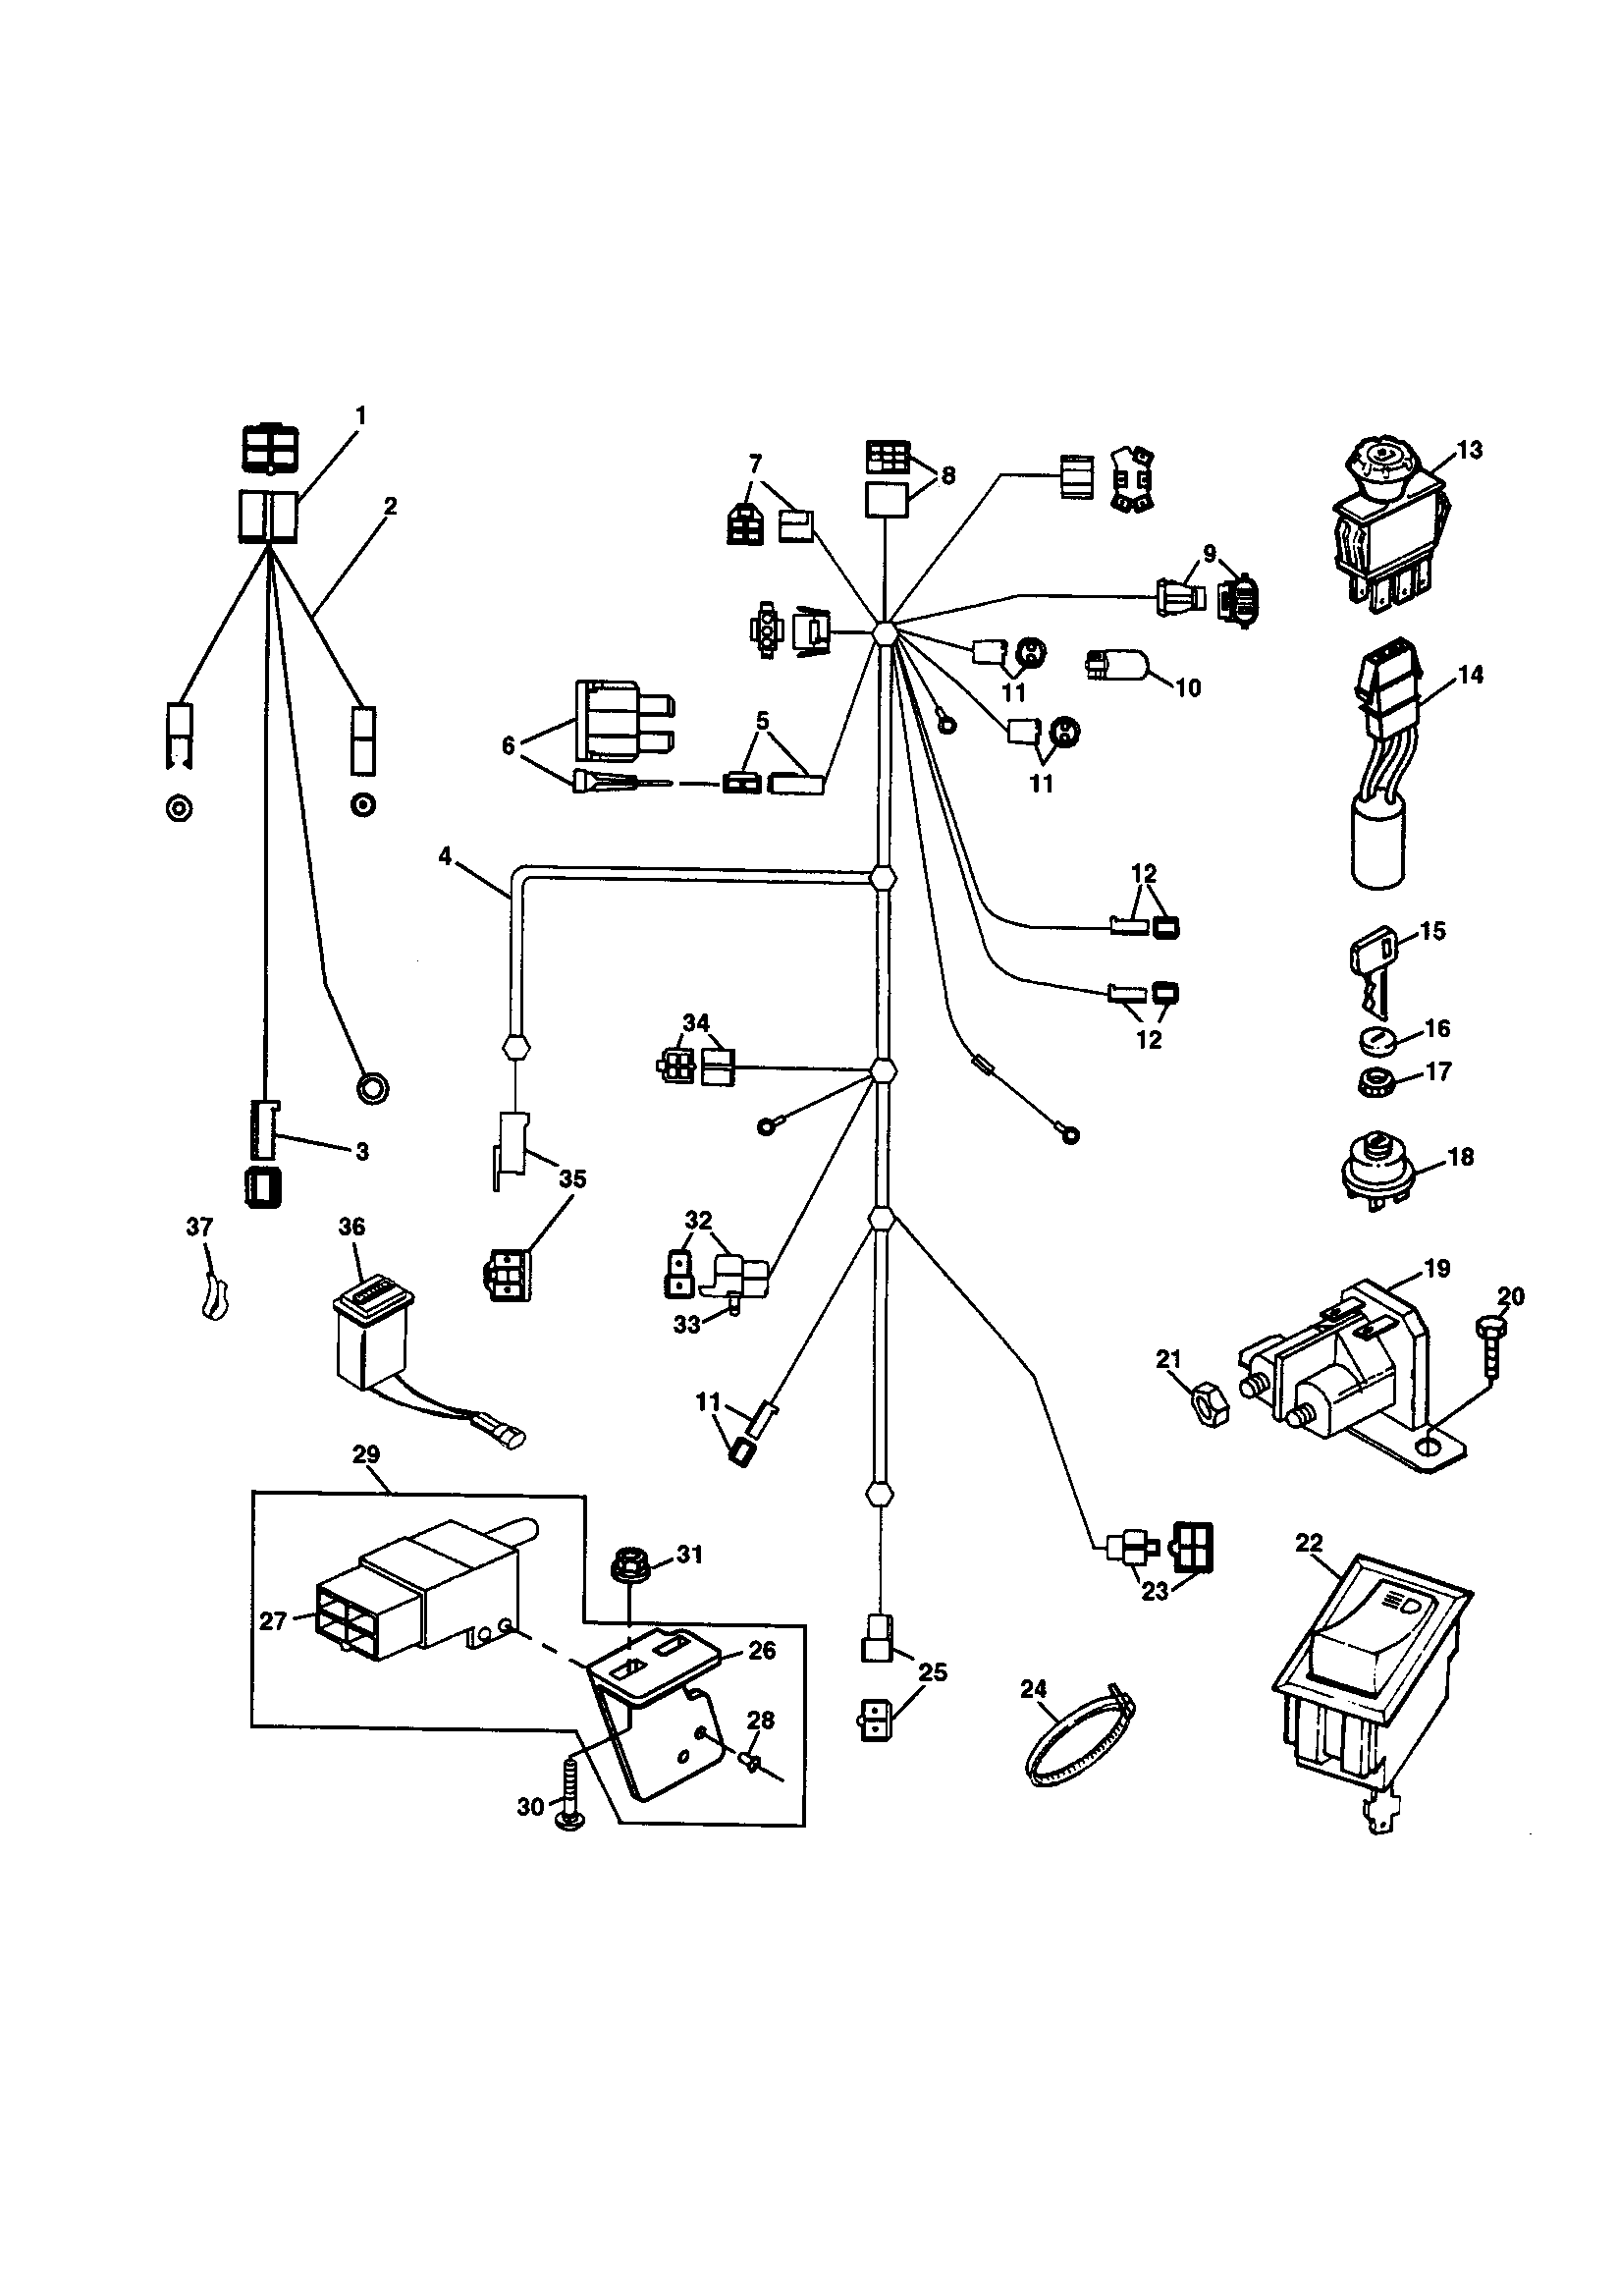 Scotts S1742 Wiring Diagram Schematics Riding Mower Model 1742g Electrical Lawn Parts Lookup 1742